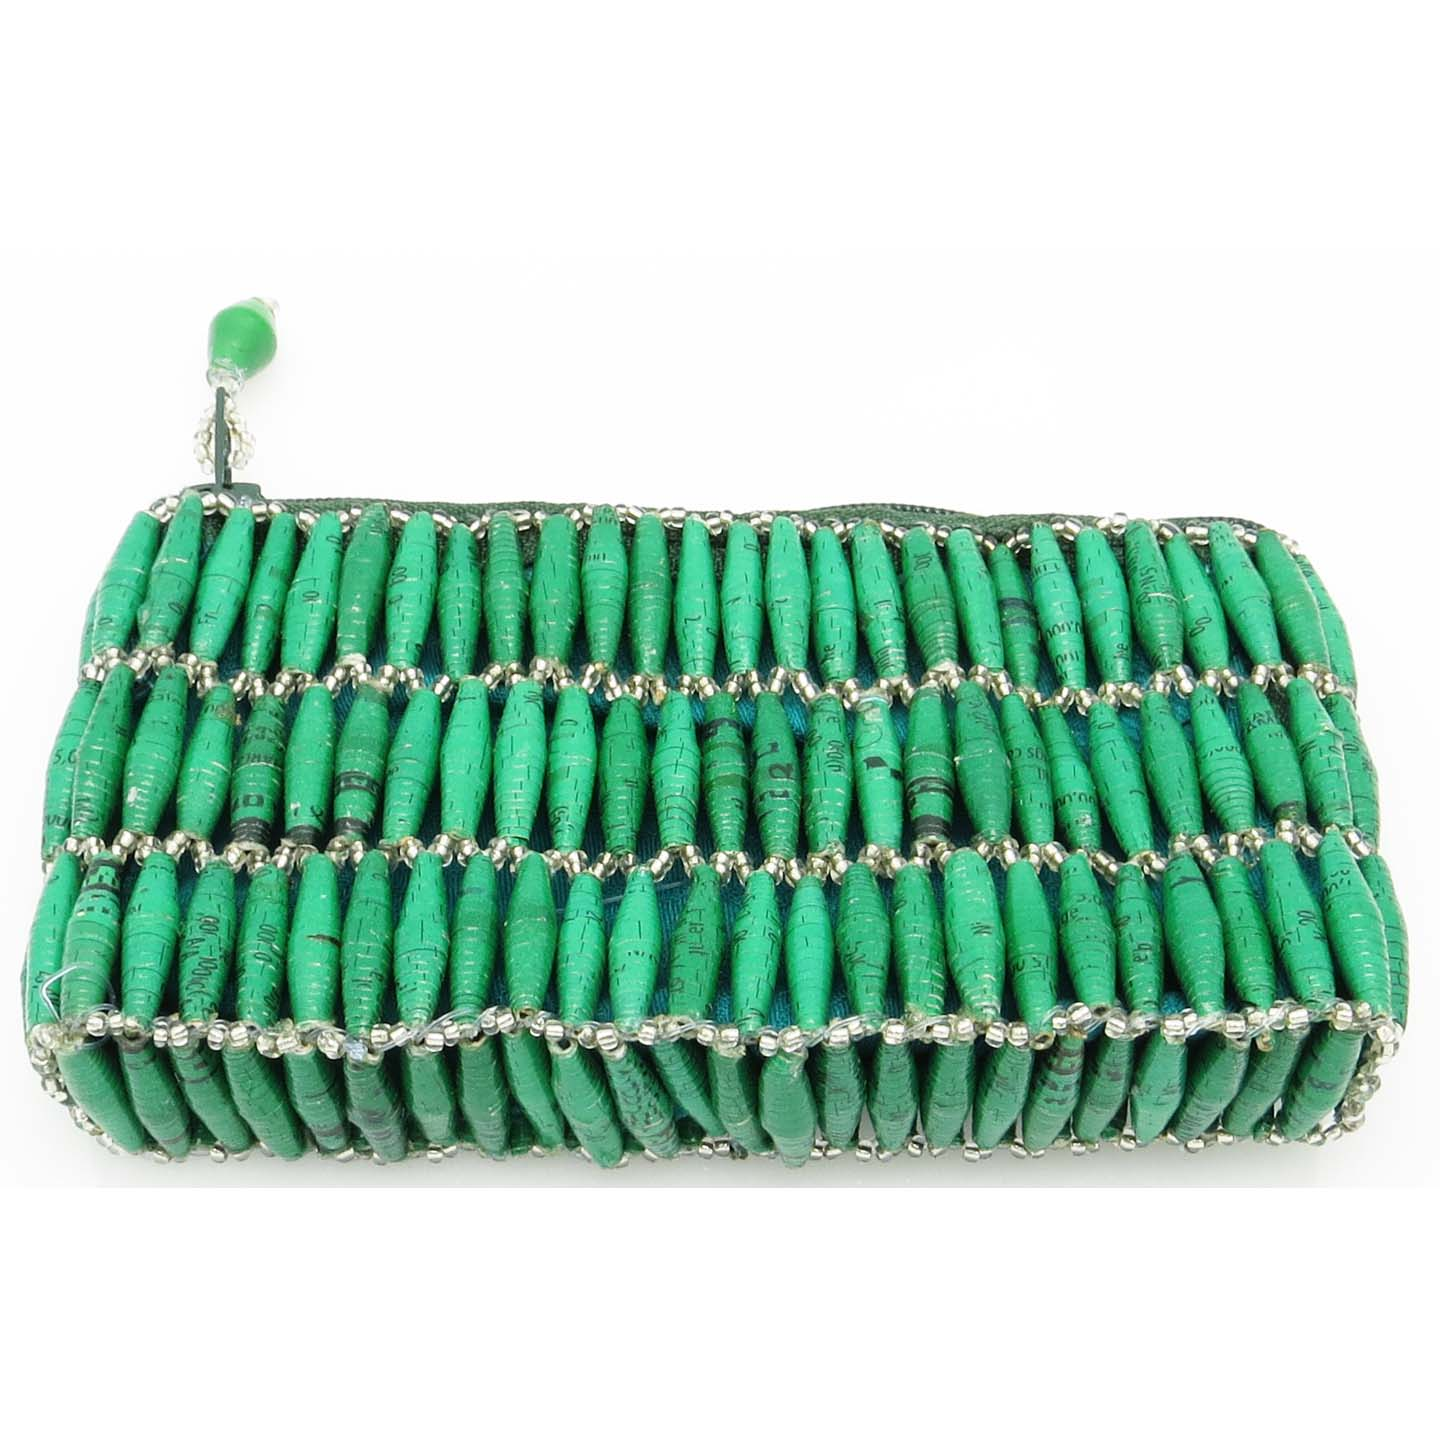 Coin purse - green